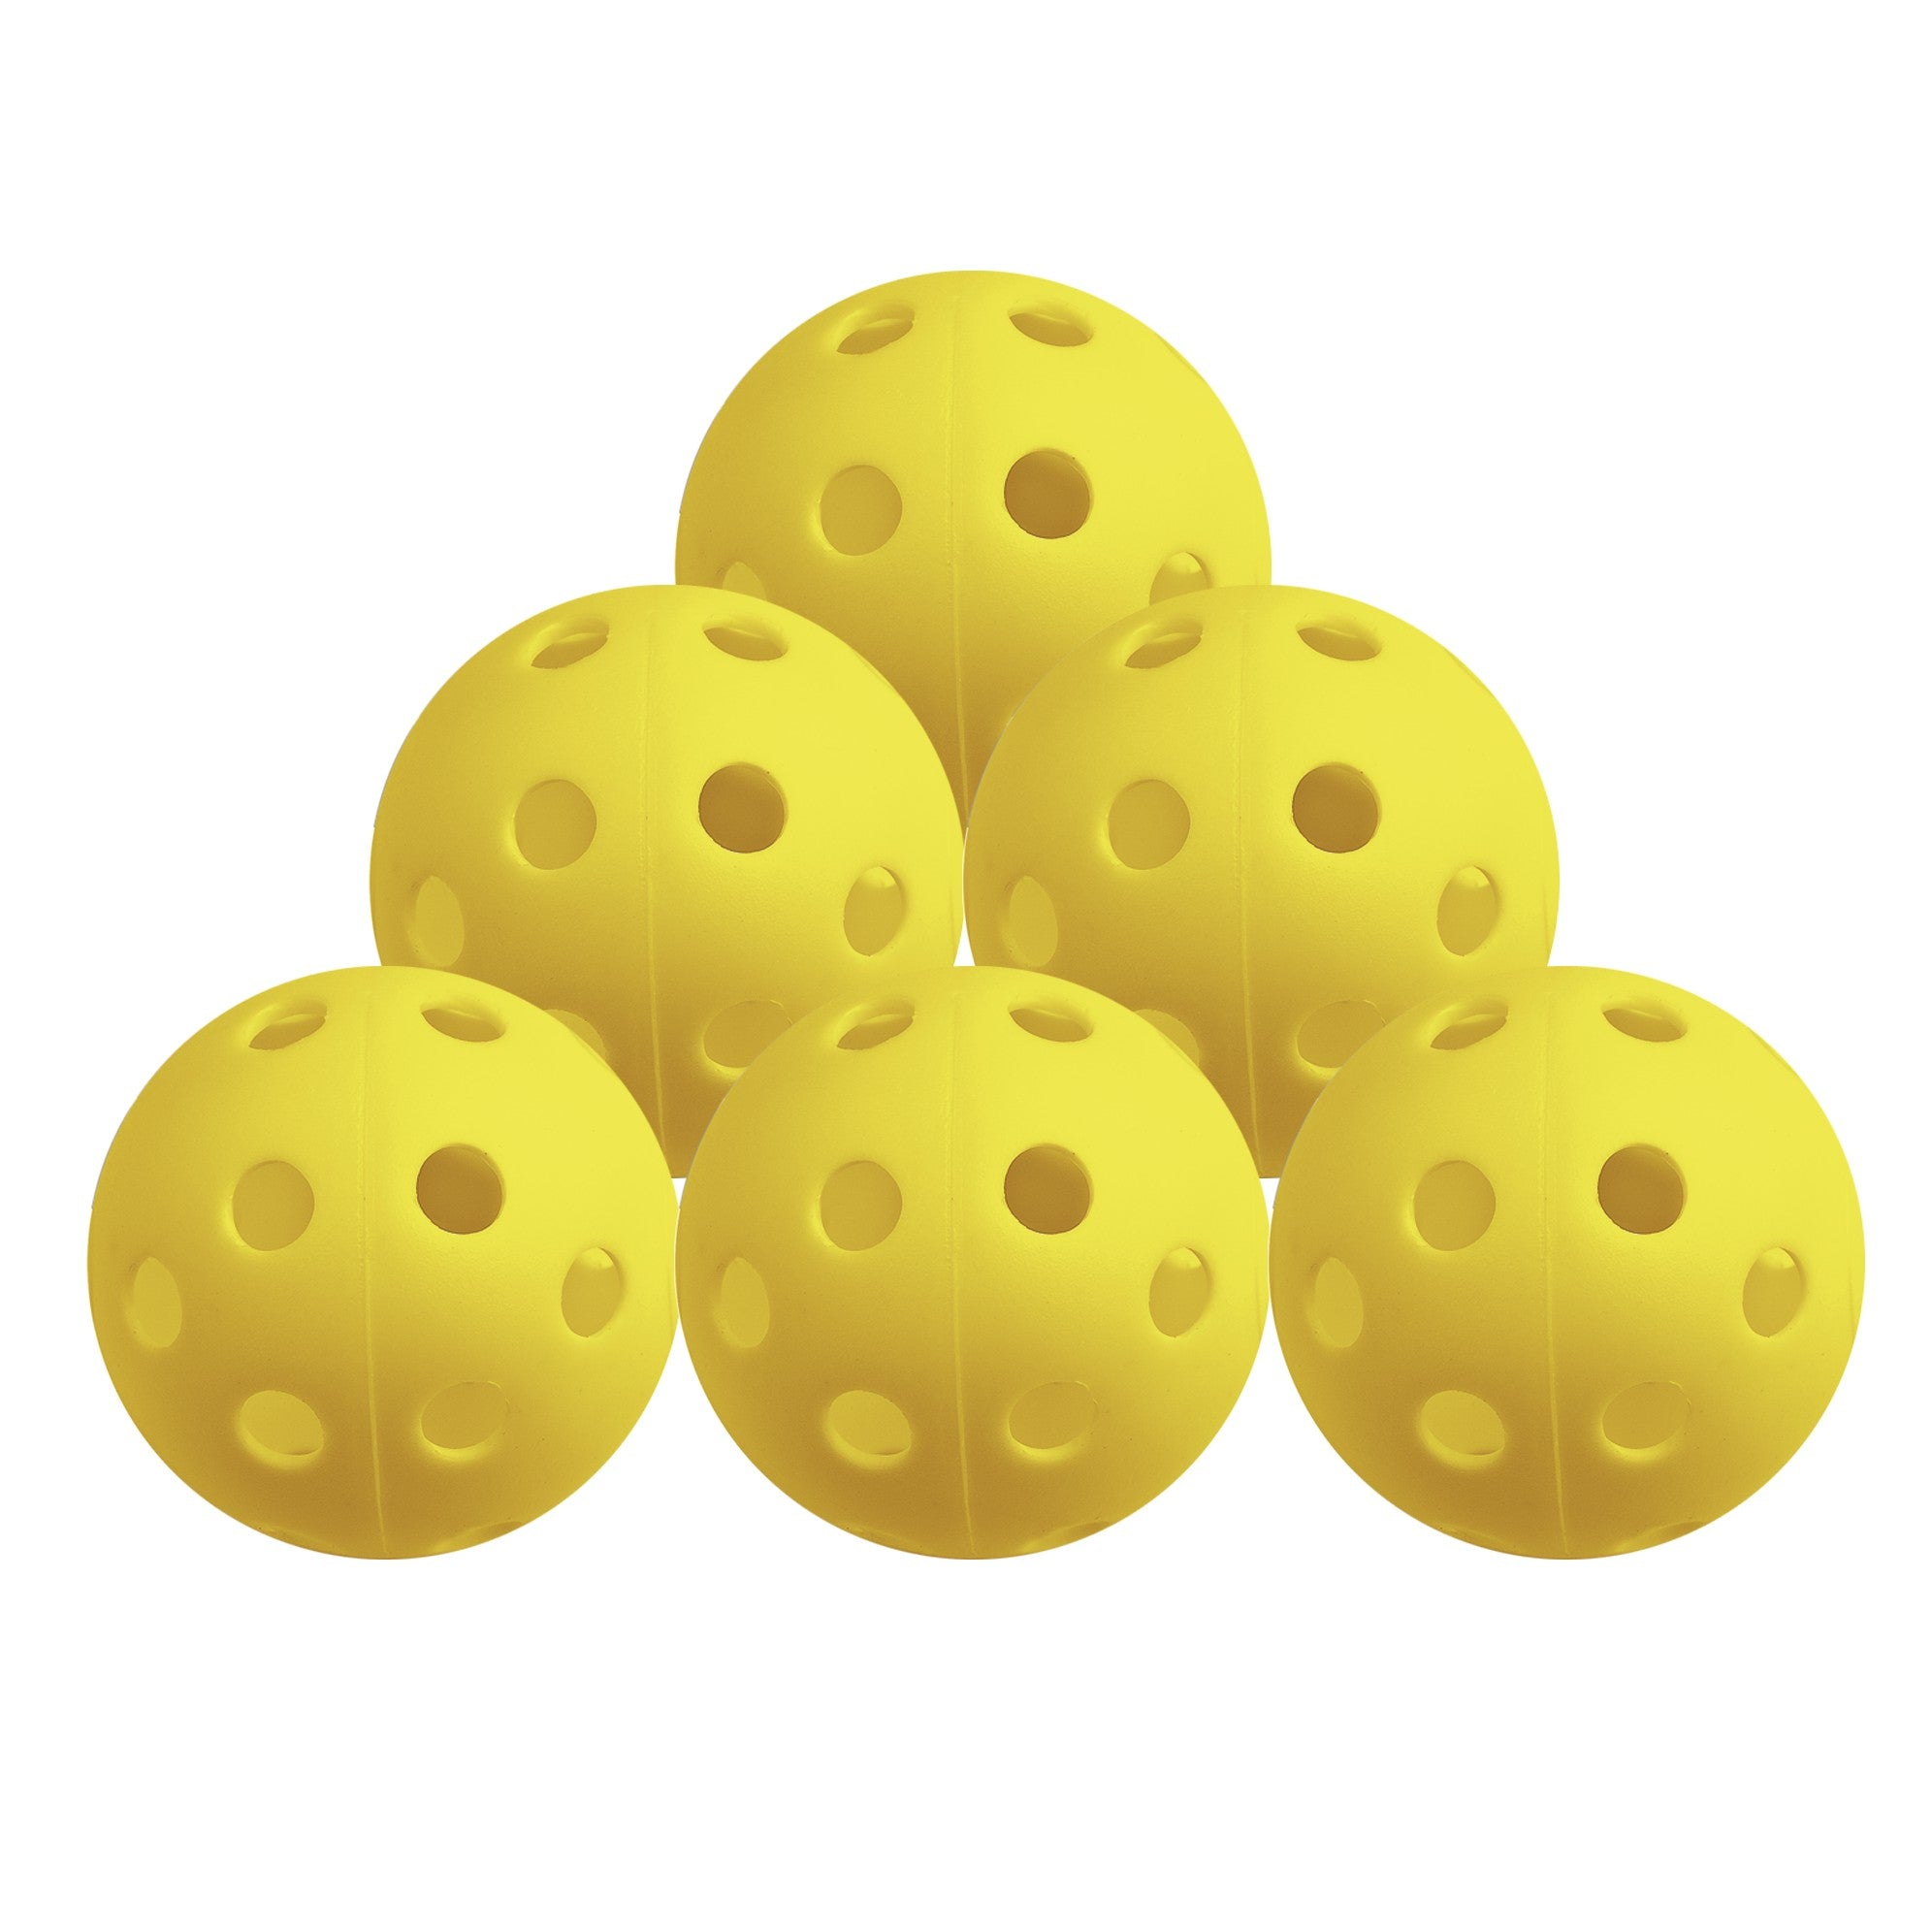 Airflow Practice Balls - Event Stuff Ltd Owns Putterfingers.com!